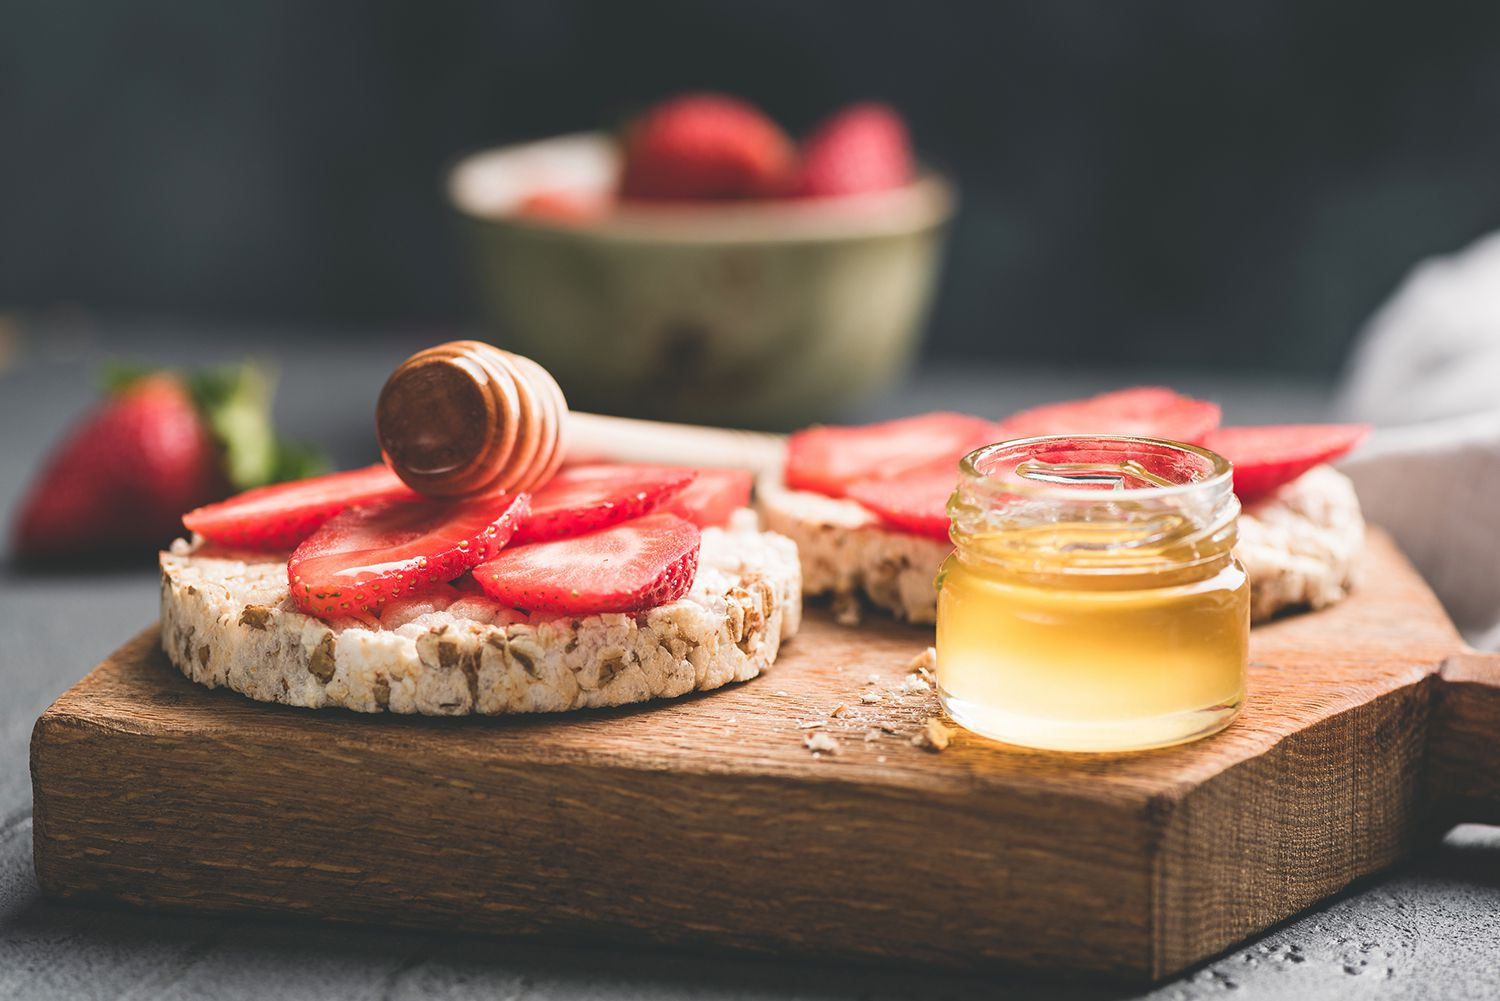 Crispbread with honey and strawberries